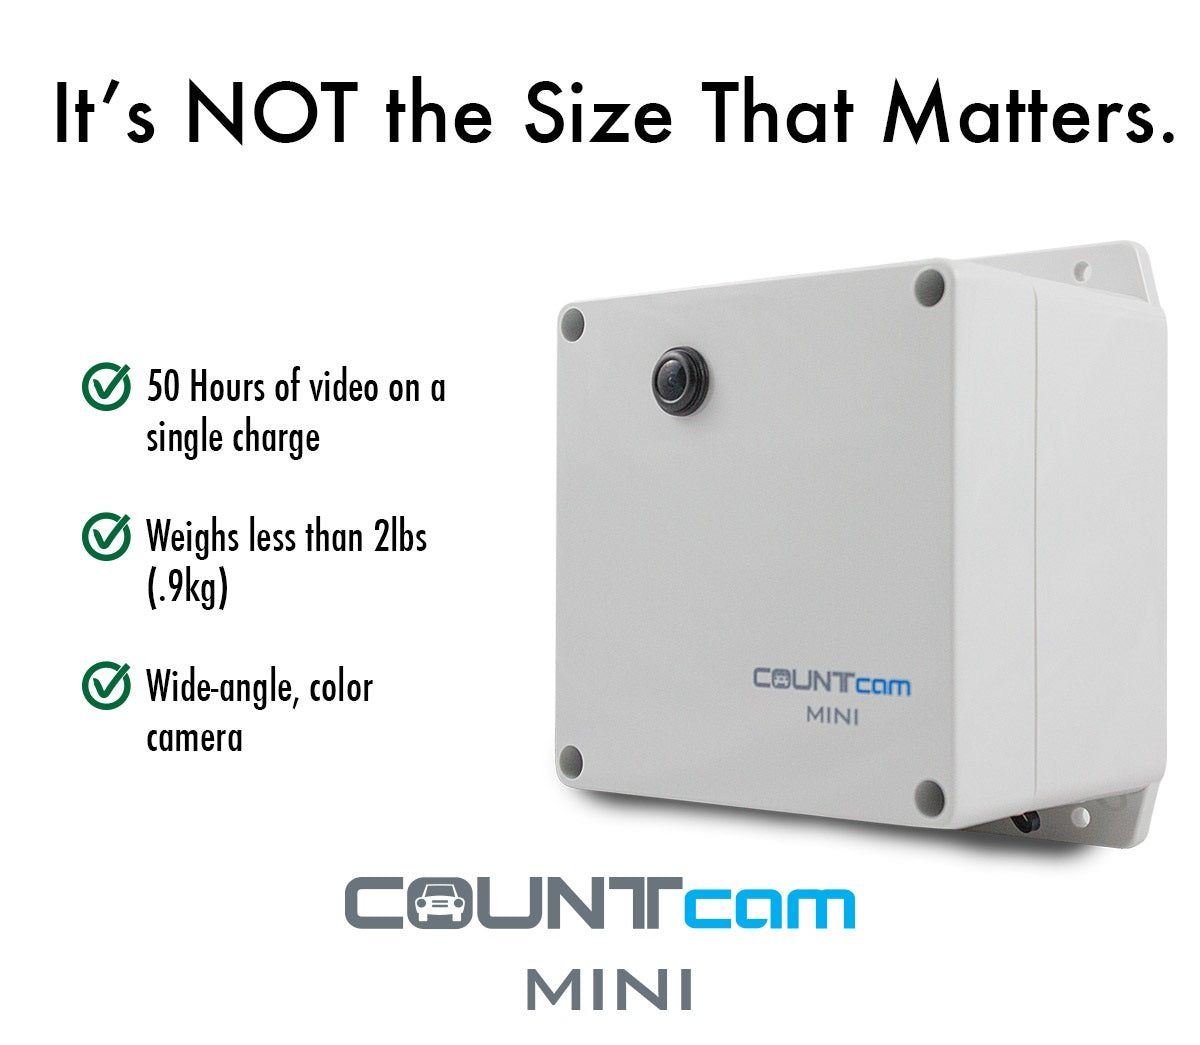 COUNTcam Mini